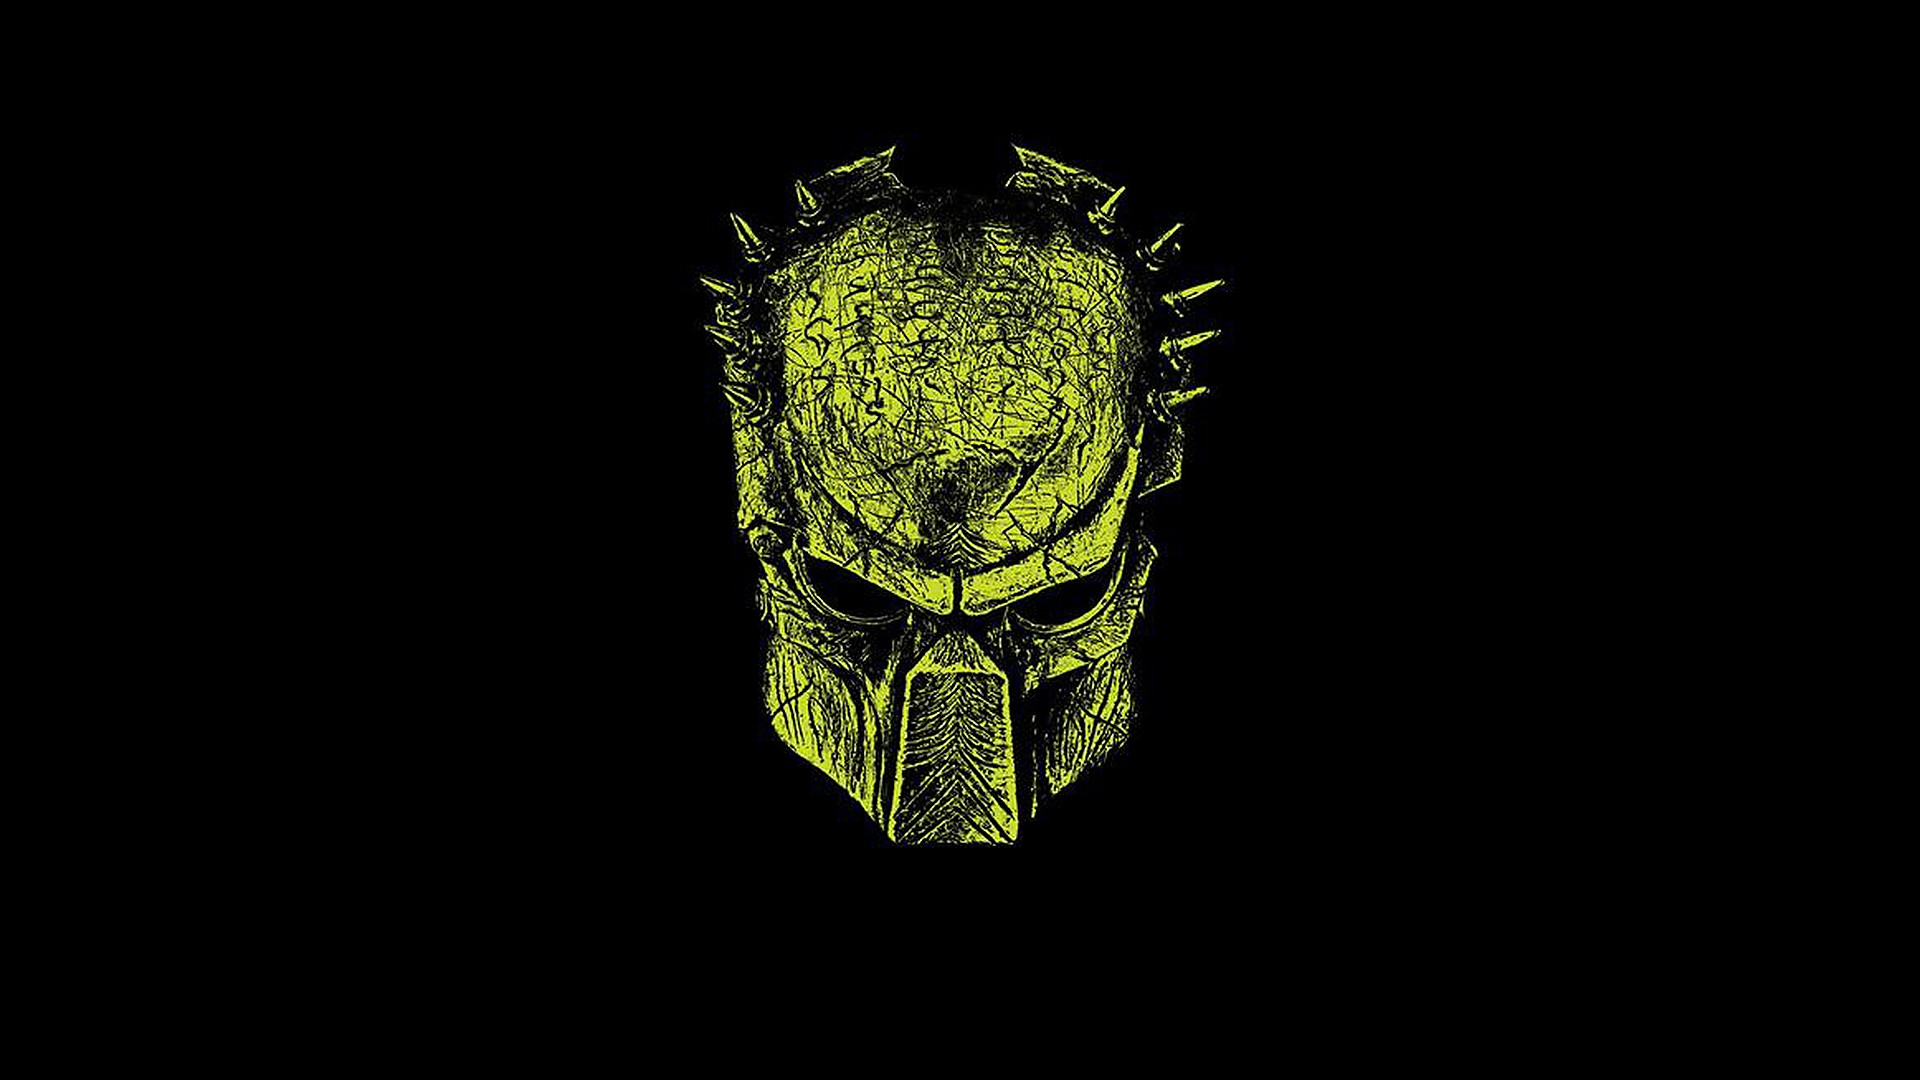 Transformers 5 Hd Wallpapers 1080p Download Predator Full Hd Wallpaper And Background Image